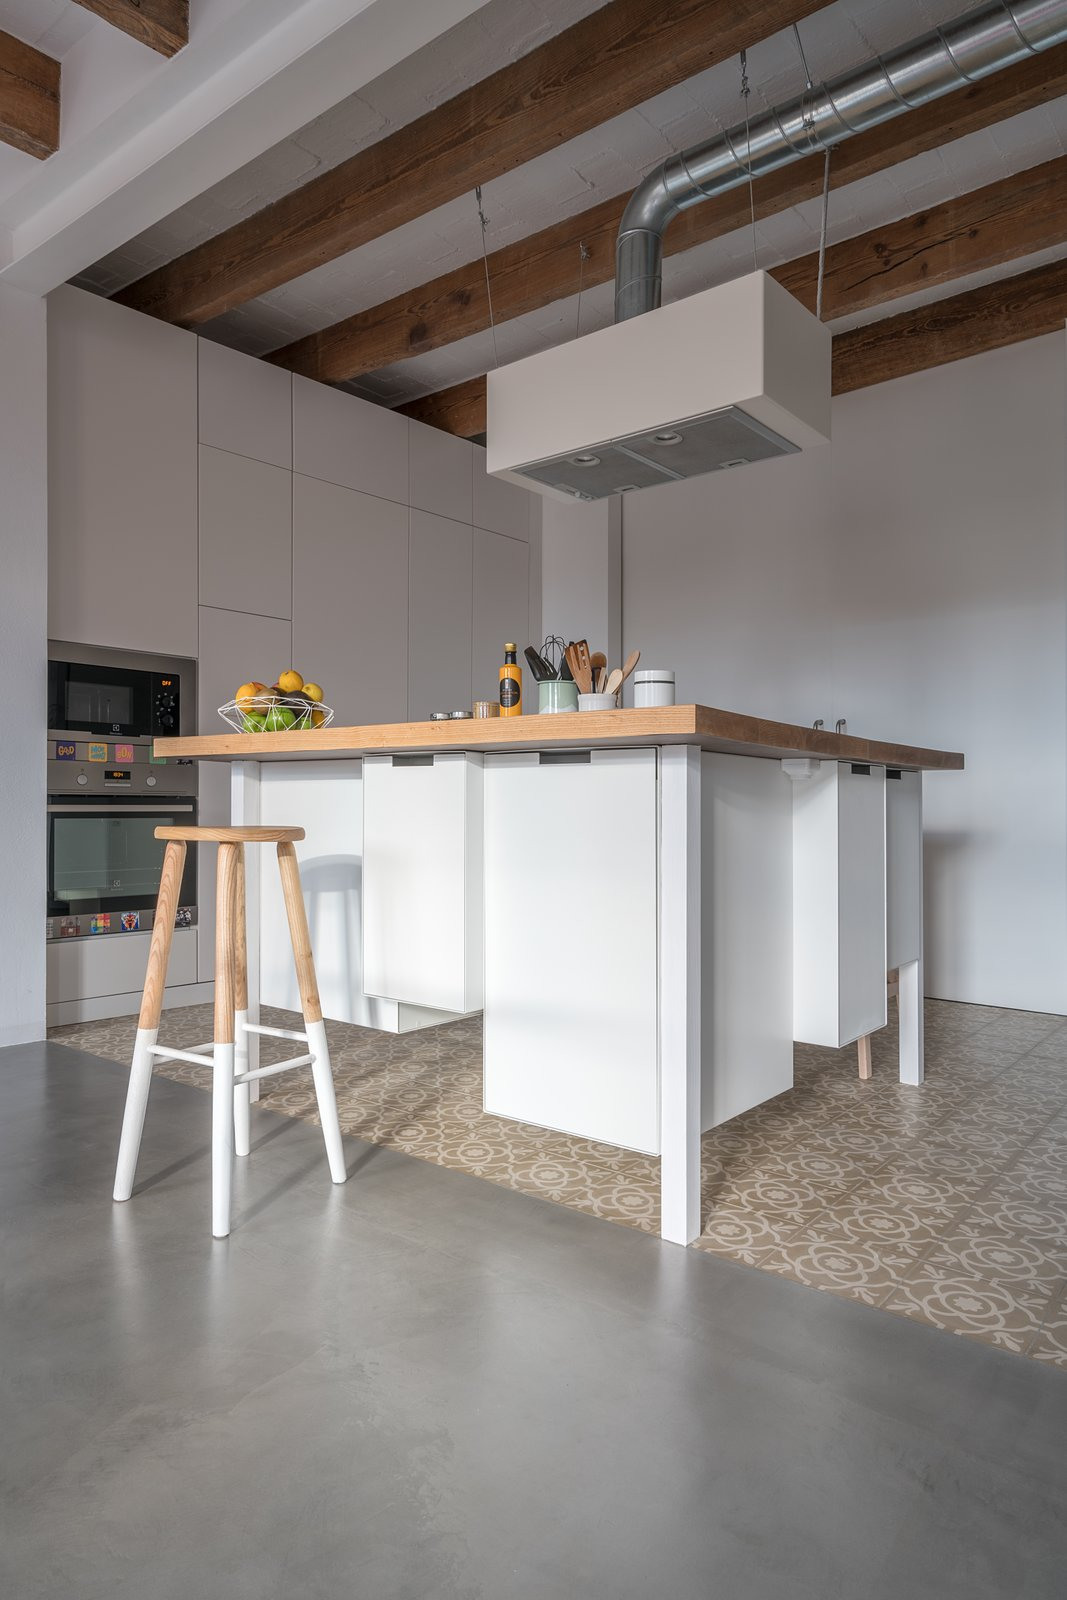 Kitchen, Wood Counter, White Cabinet, and Ceramic Tile Floor Kitchen Table  Old Town Refurbishment by Habitan Architects